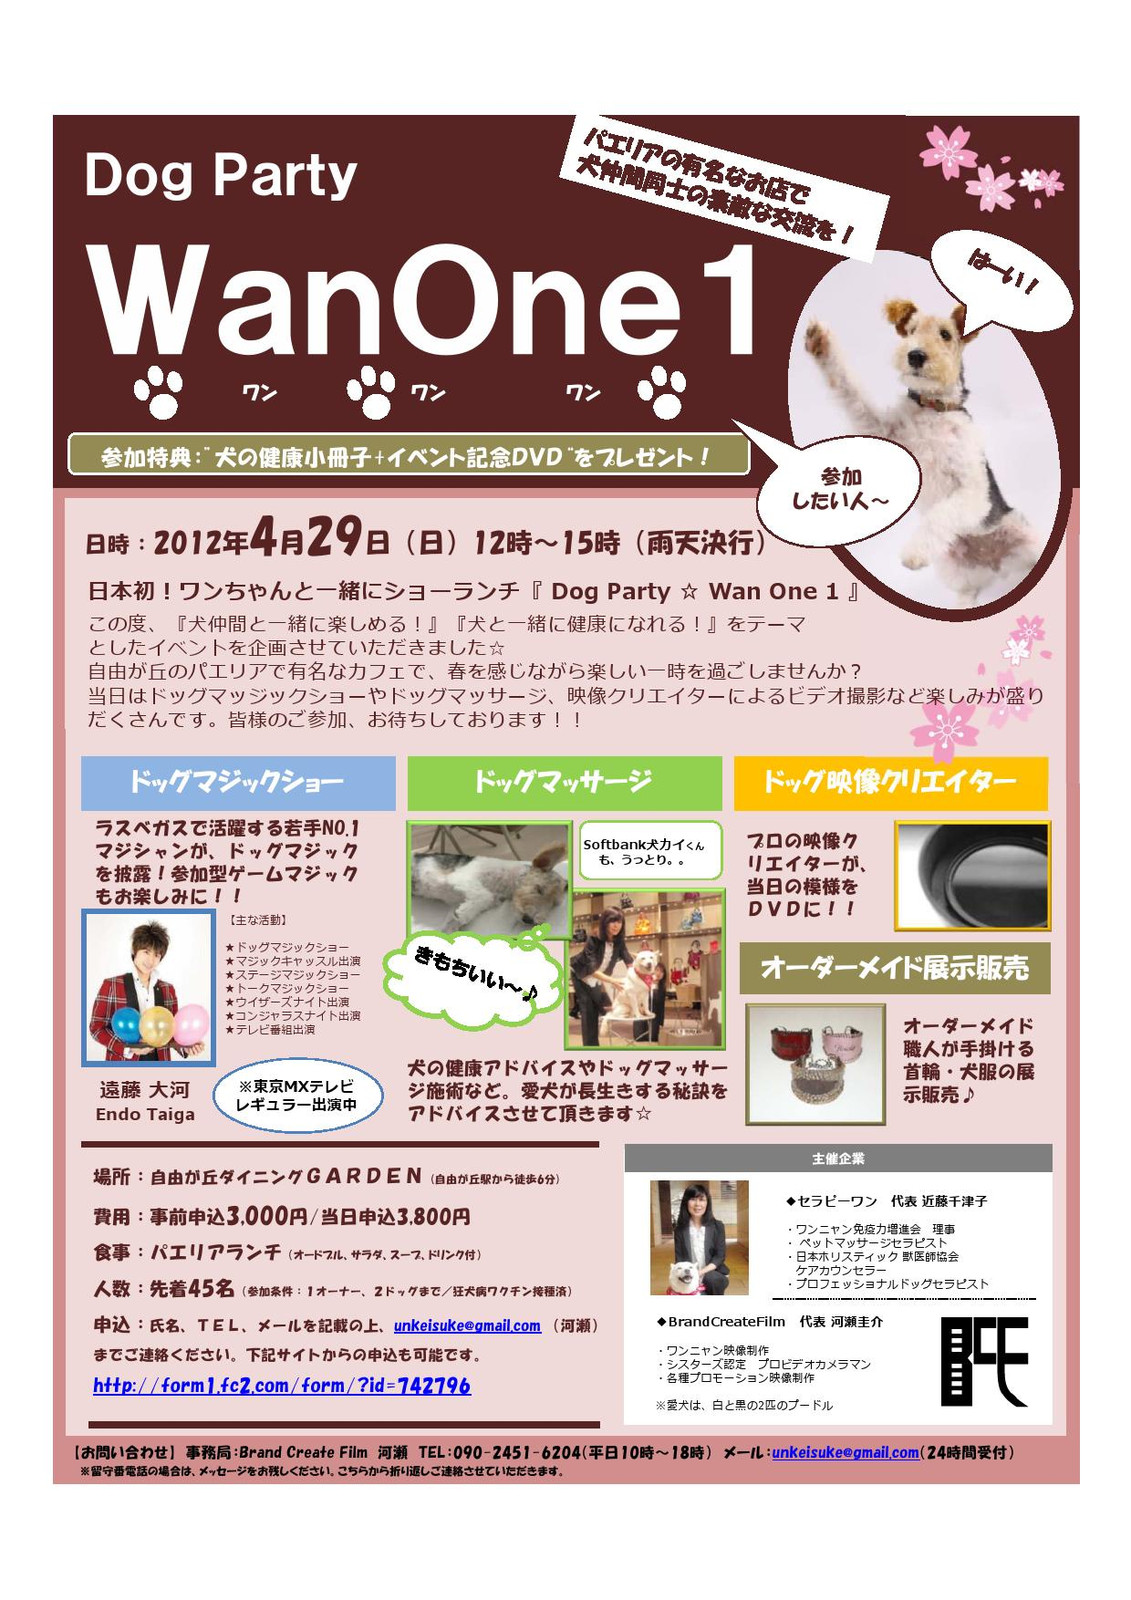 Dogparty_wanone1_vol1_20120429_2